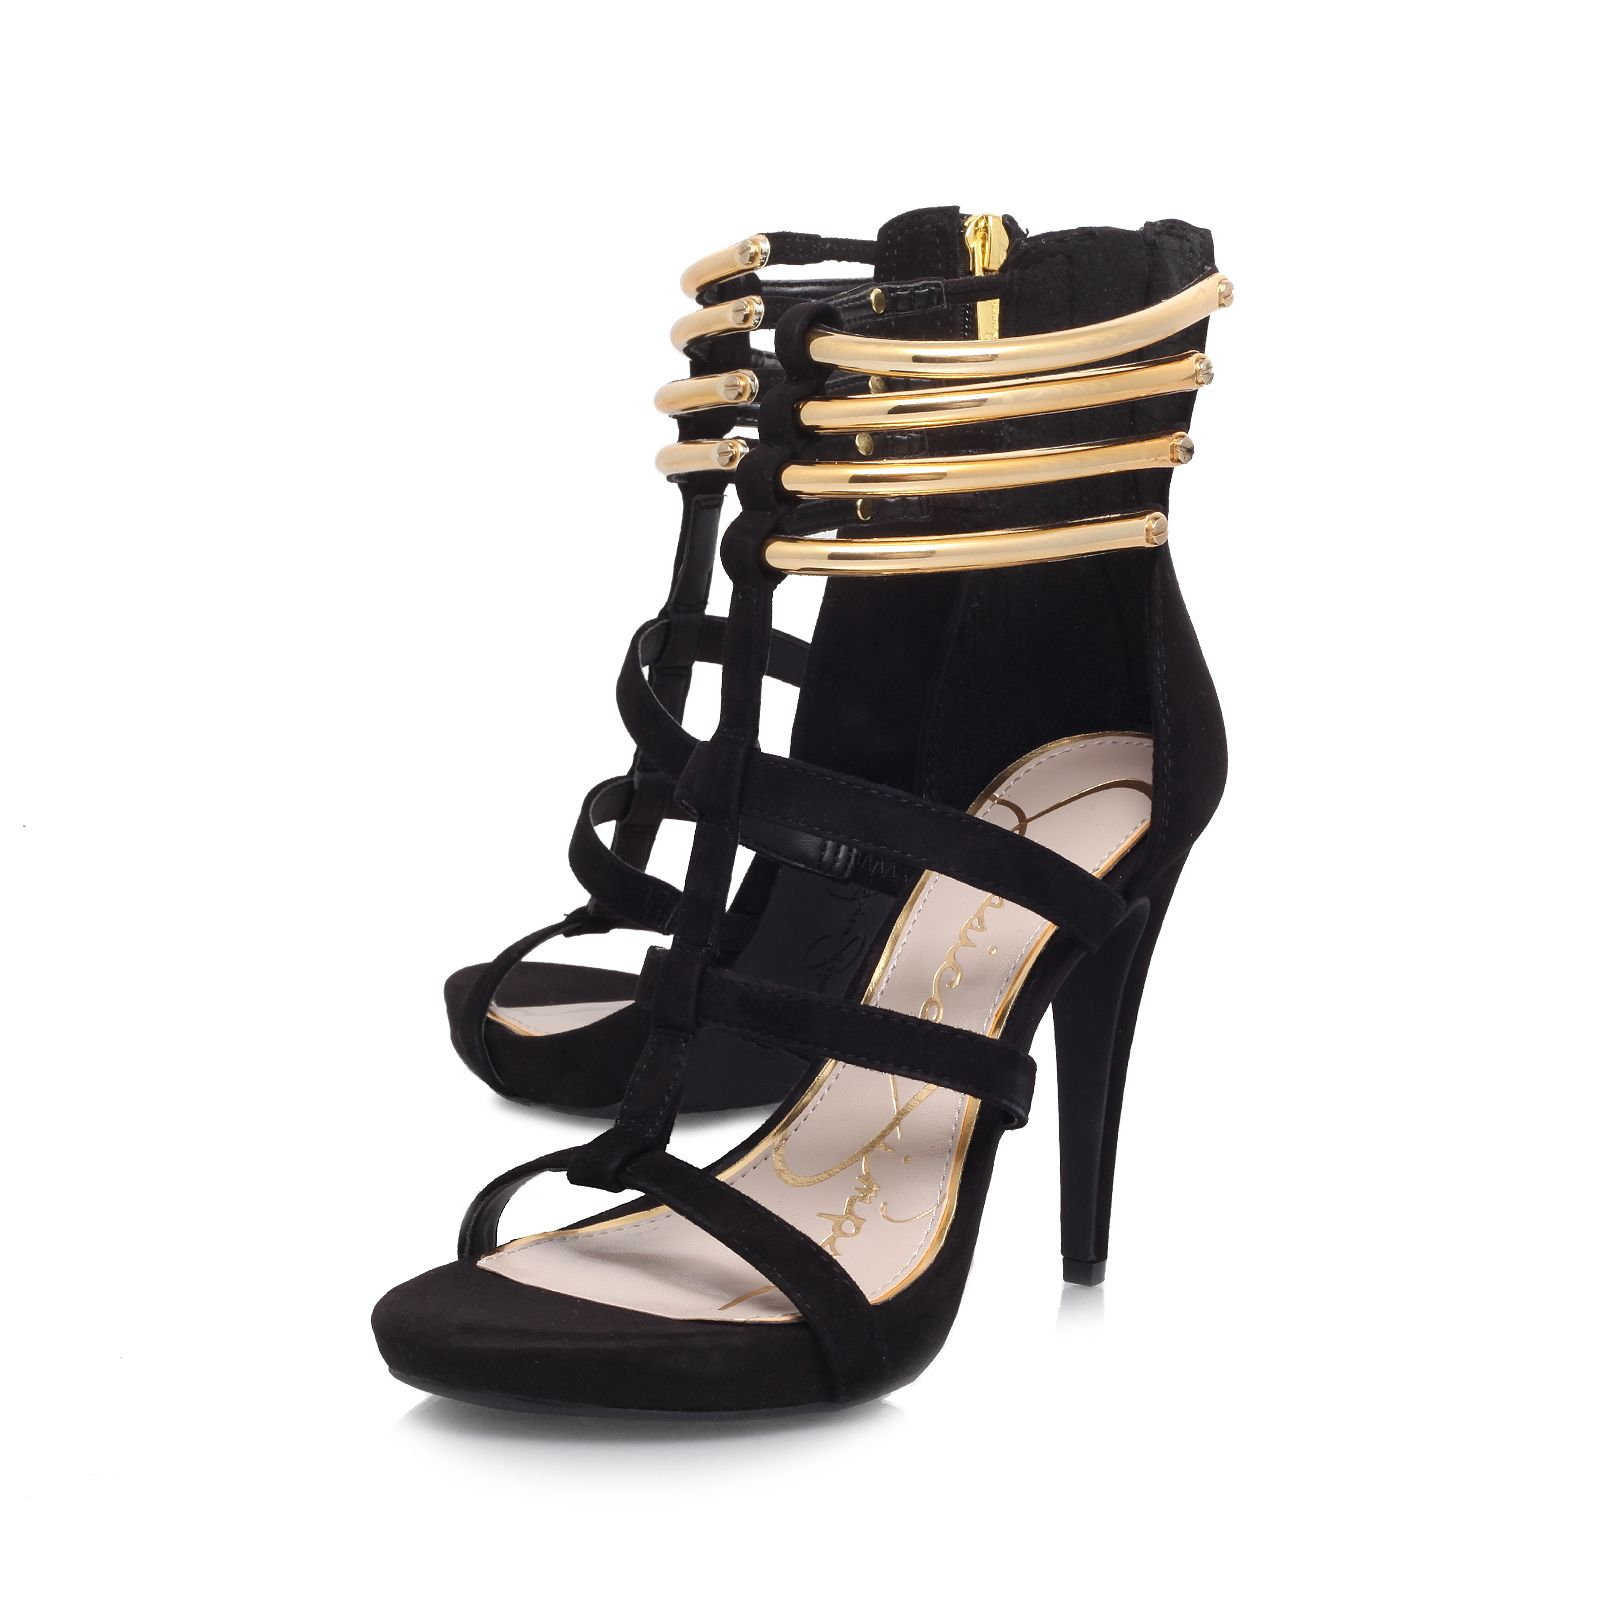 Cendini heeled court shoes